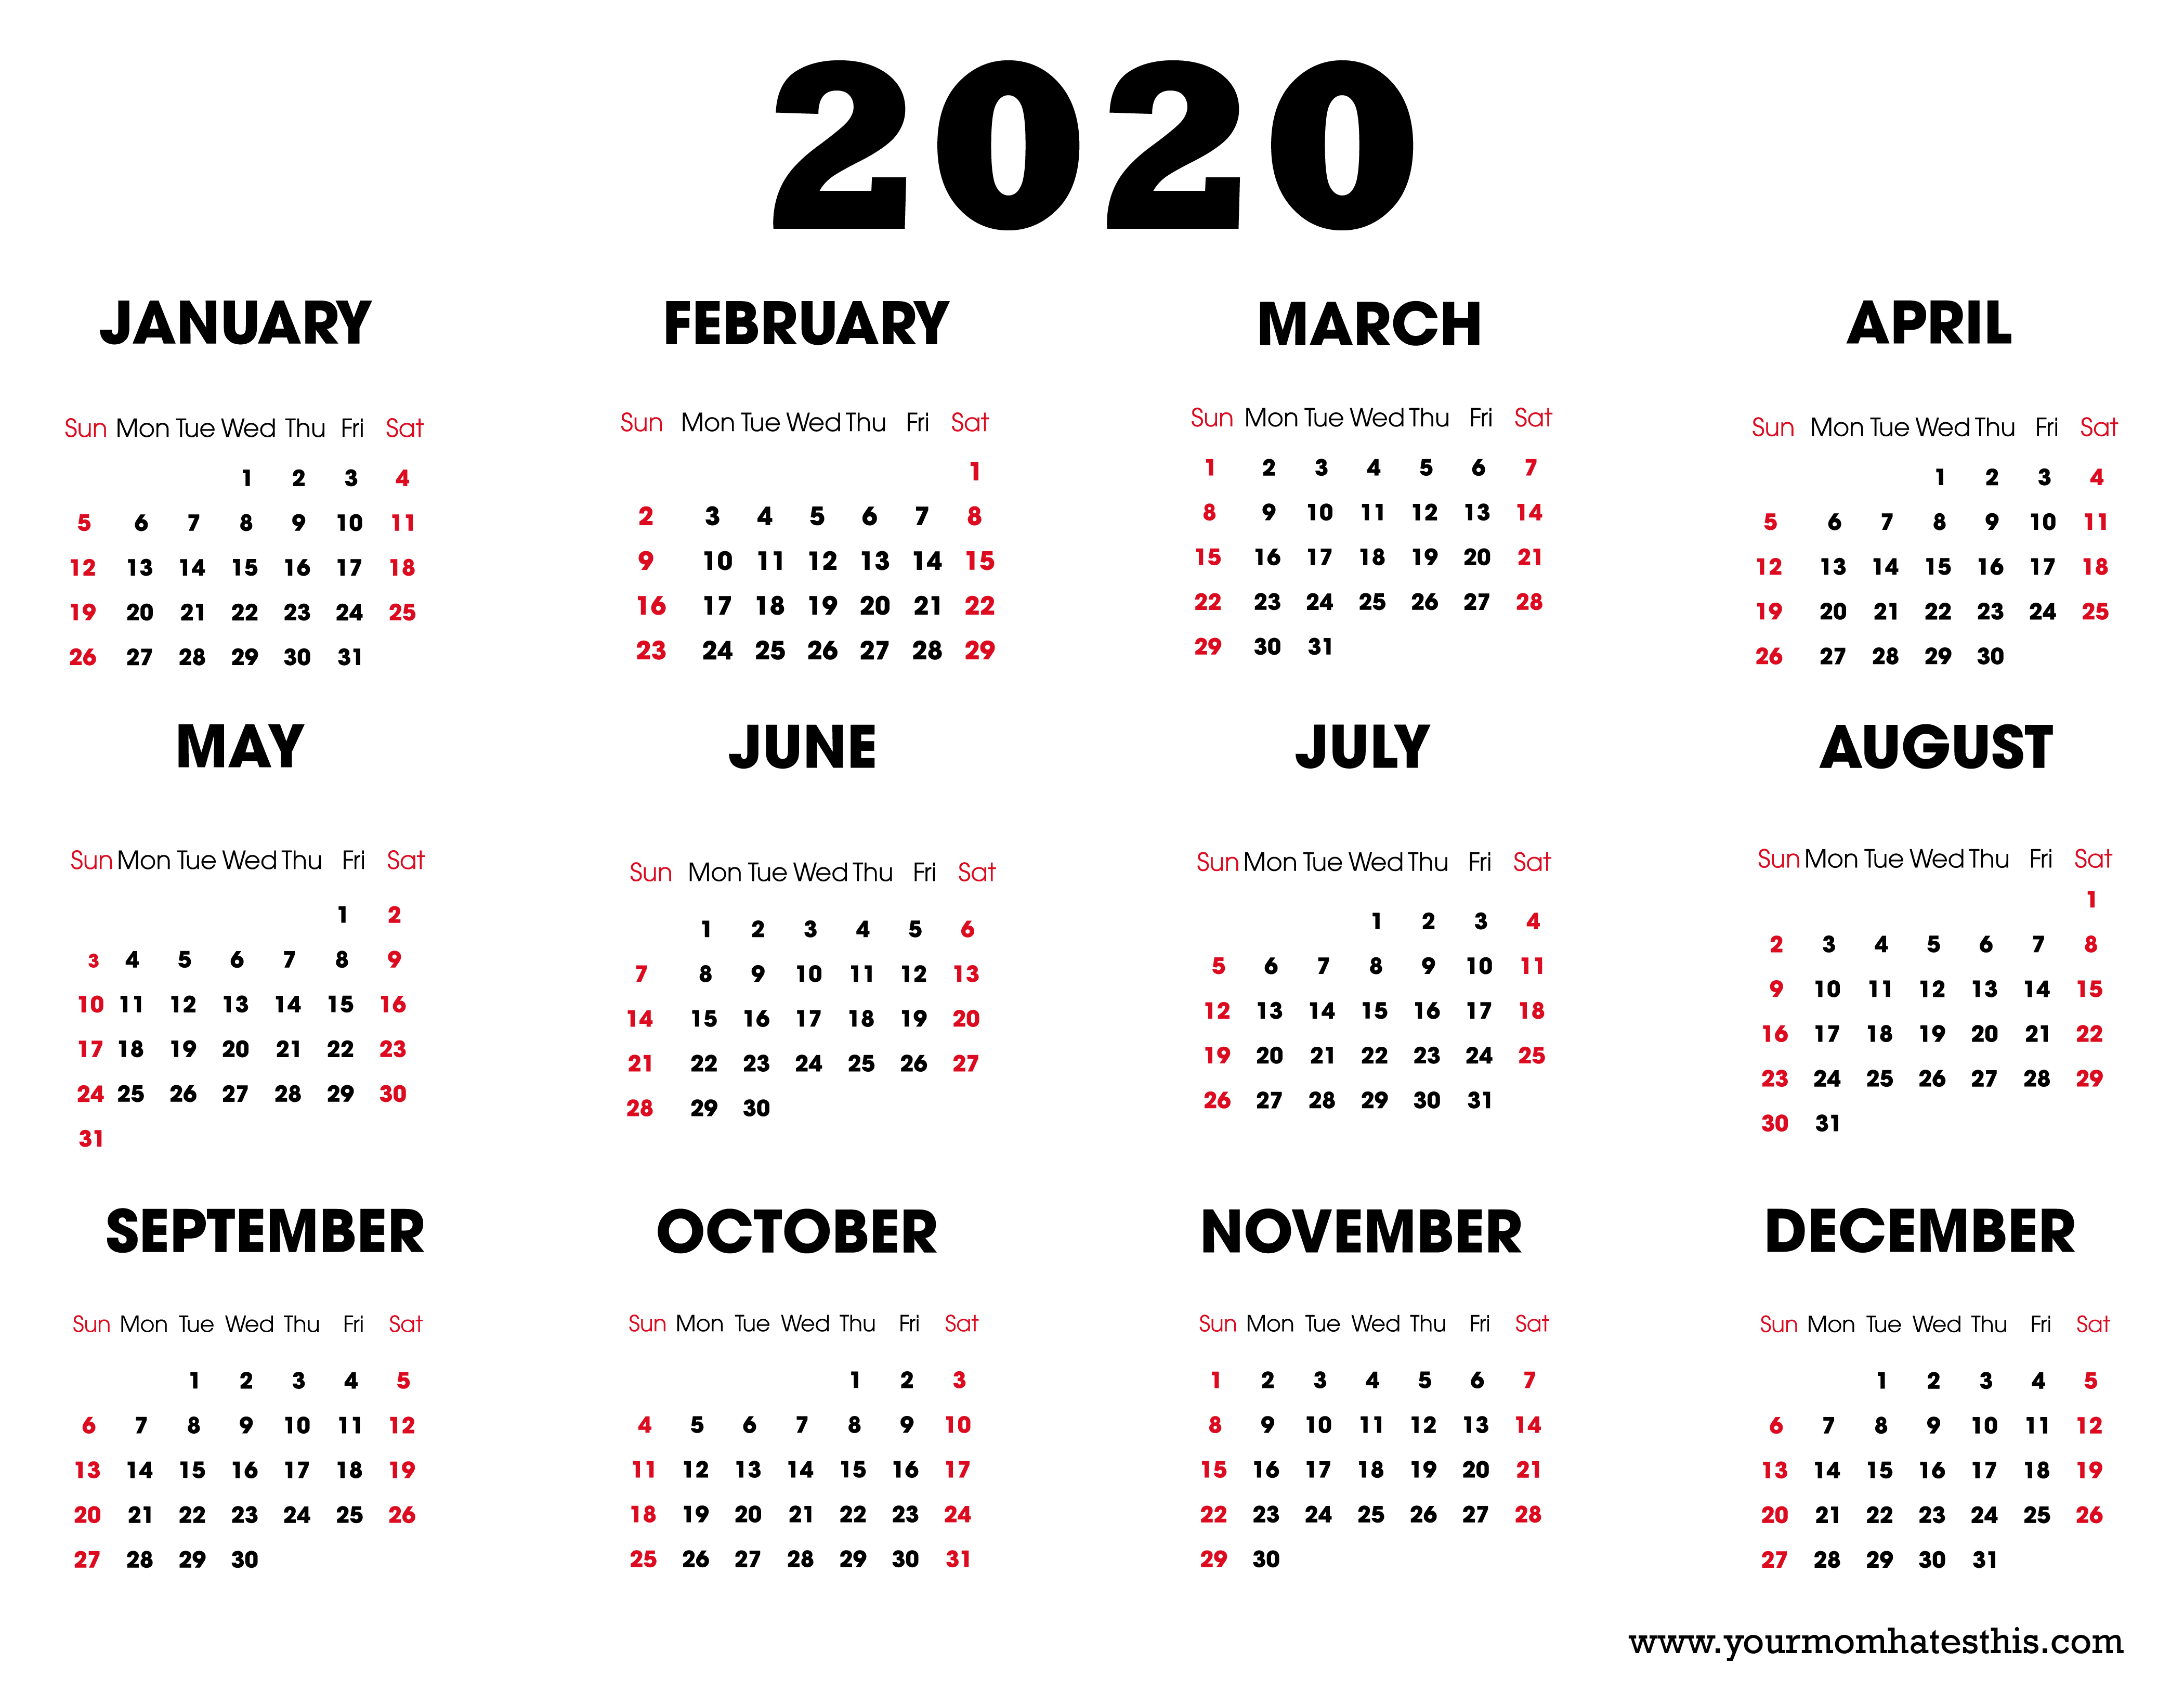 2020 Printable Calendar - Download Free Blank Templates - Daily pertaining to 2020 Free Printable Emploee Calendars